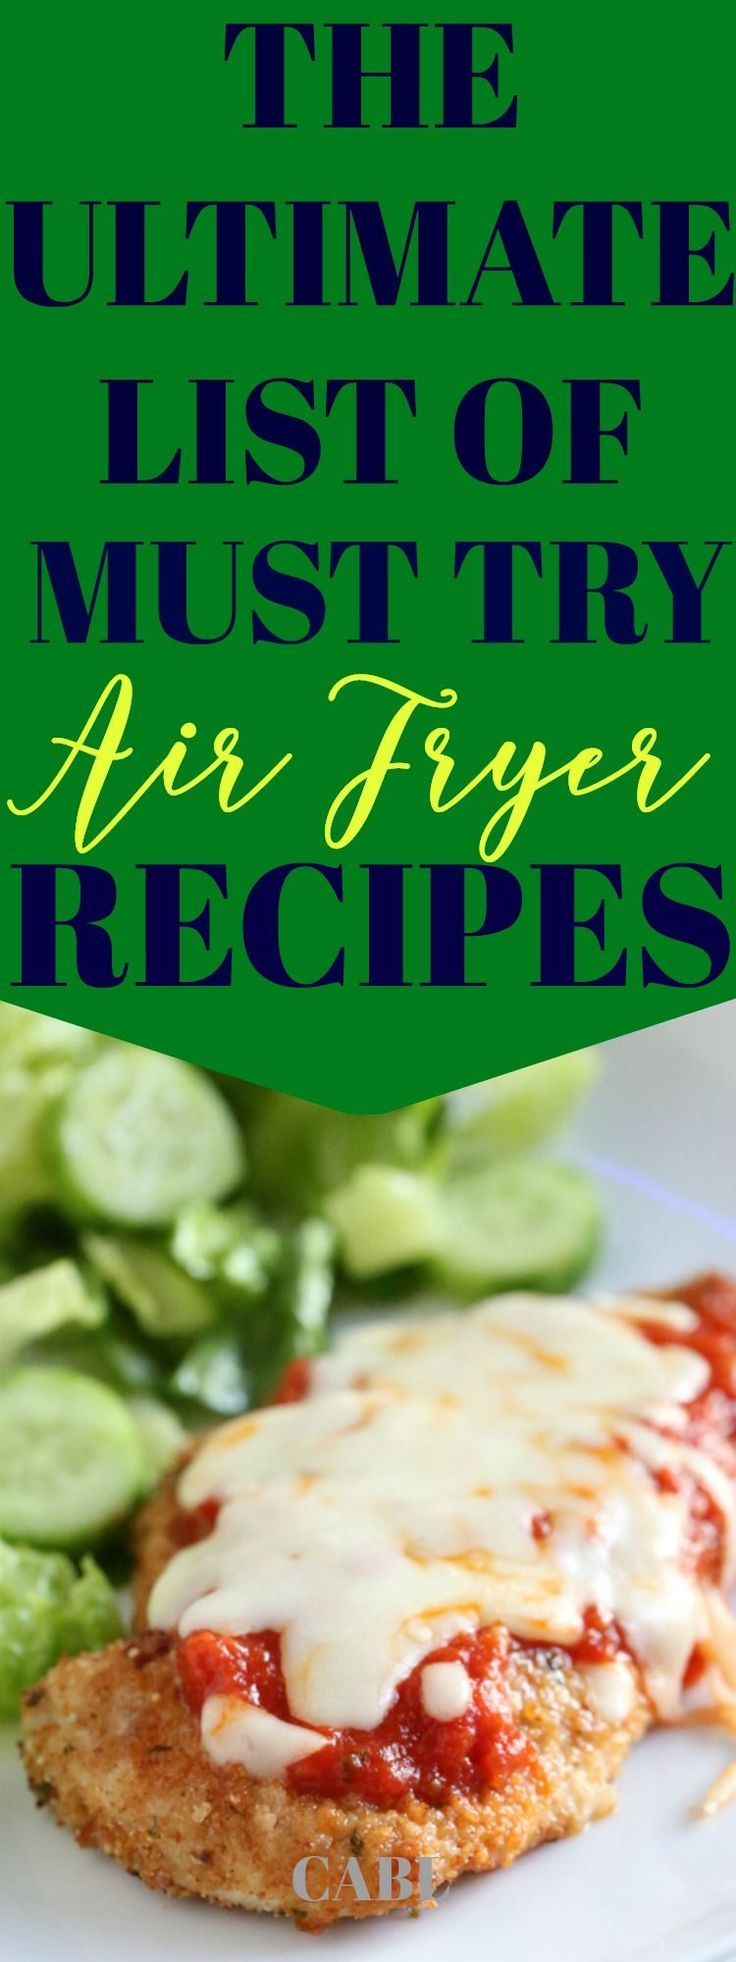 The Ultimate List Of Must Try Air Fryer Recipes #airfryer